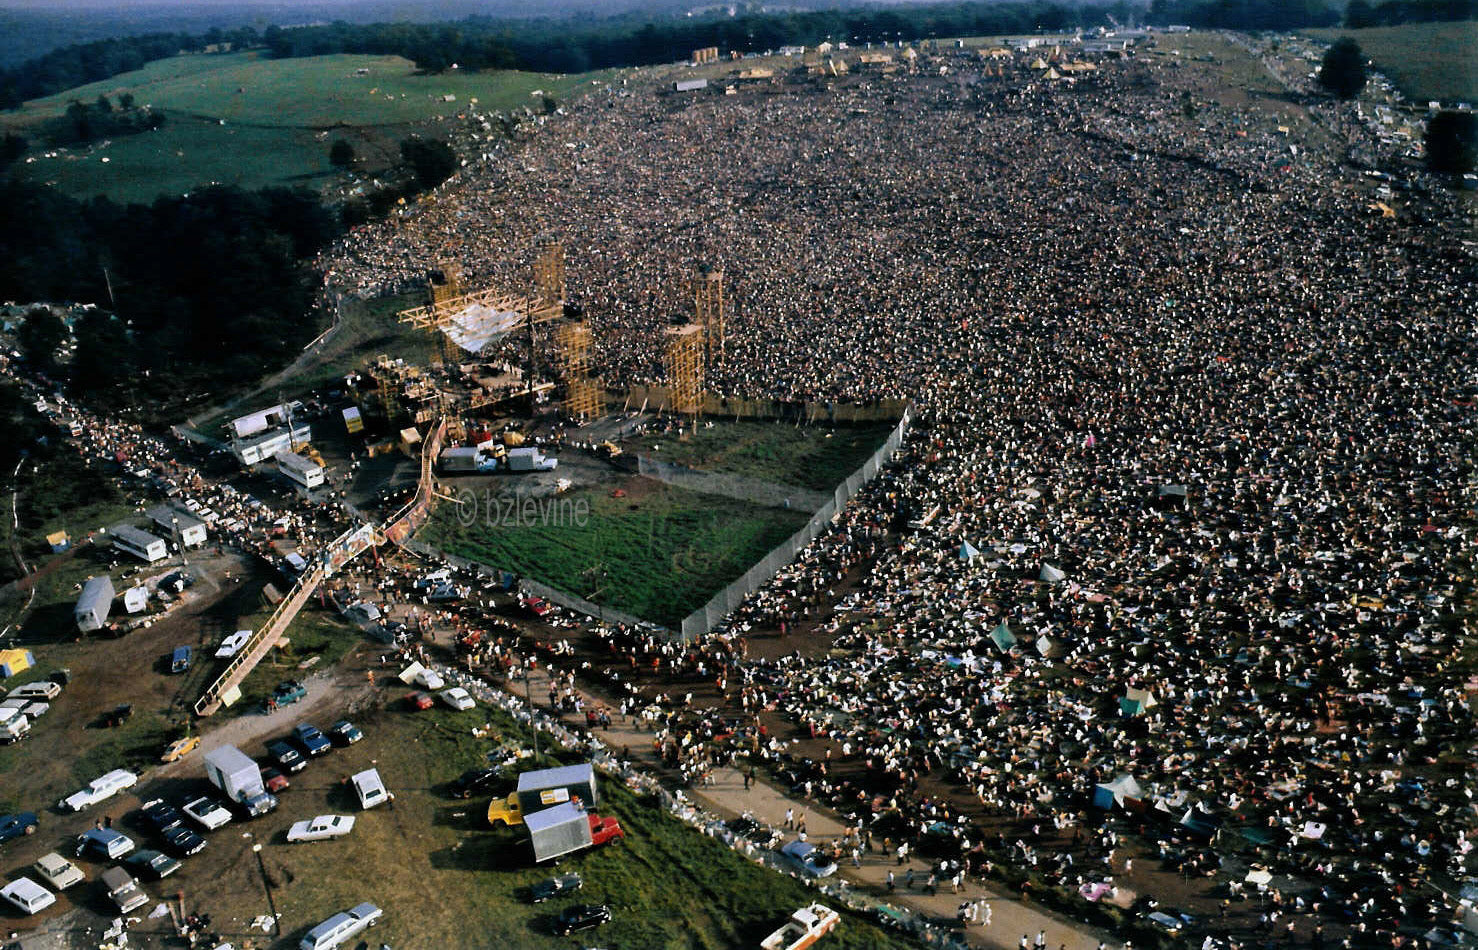 WOODSTOCK by Barry Z Levine